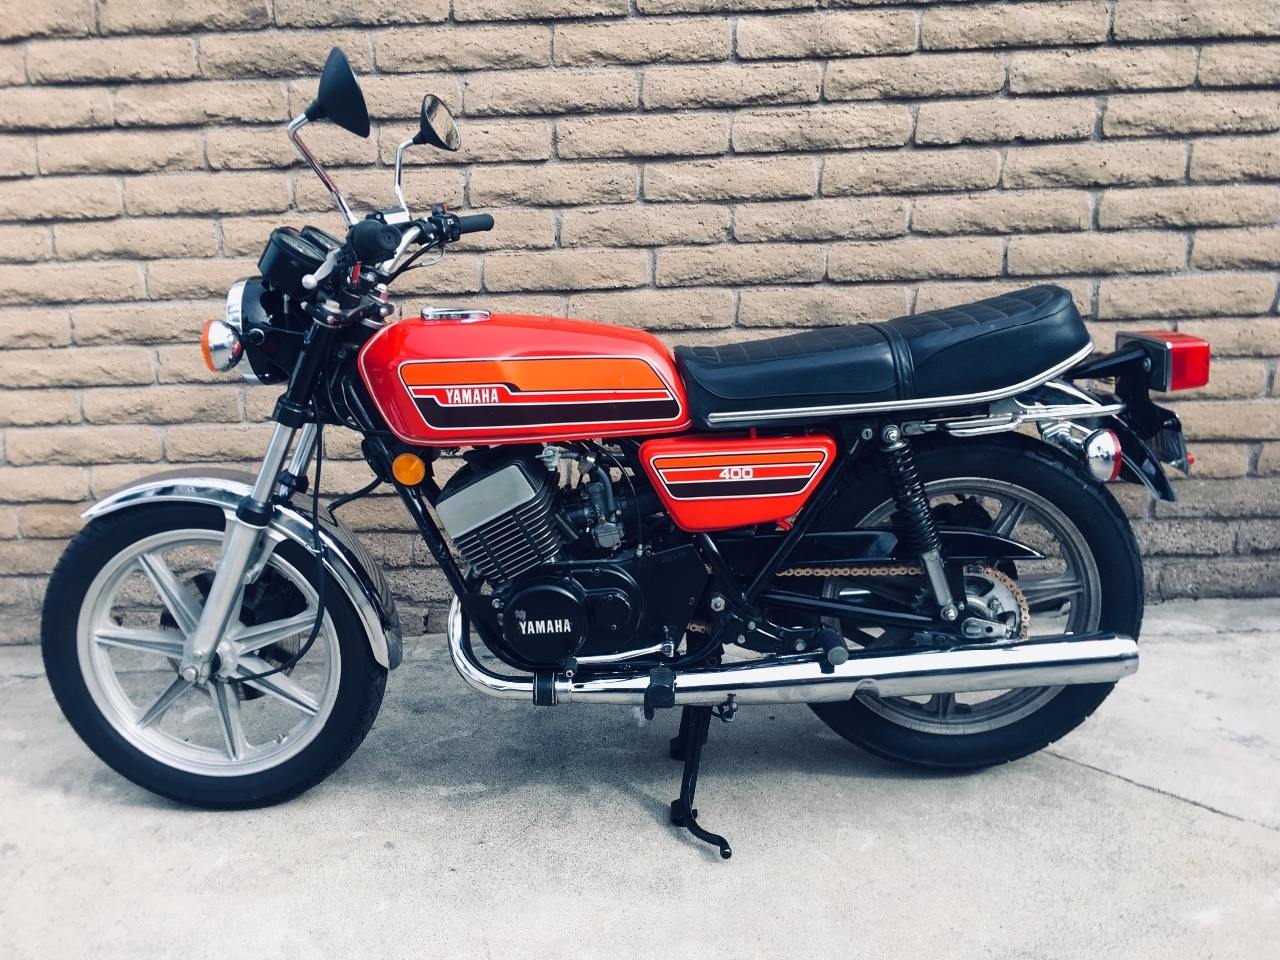 Used RD400 For Sale - Yamaha Classic----Vintage Motorcycles